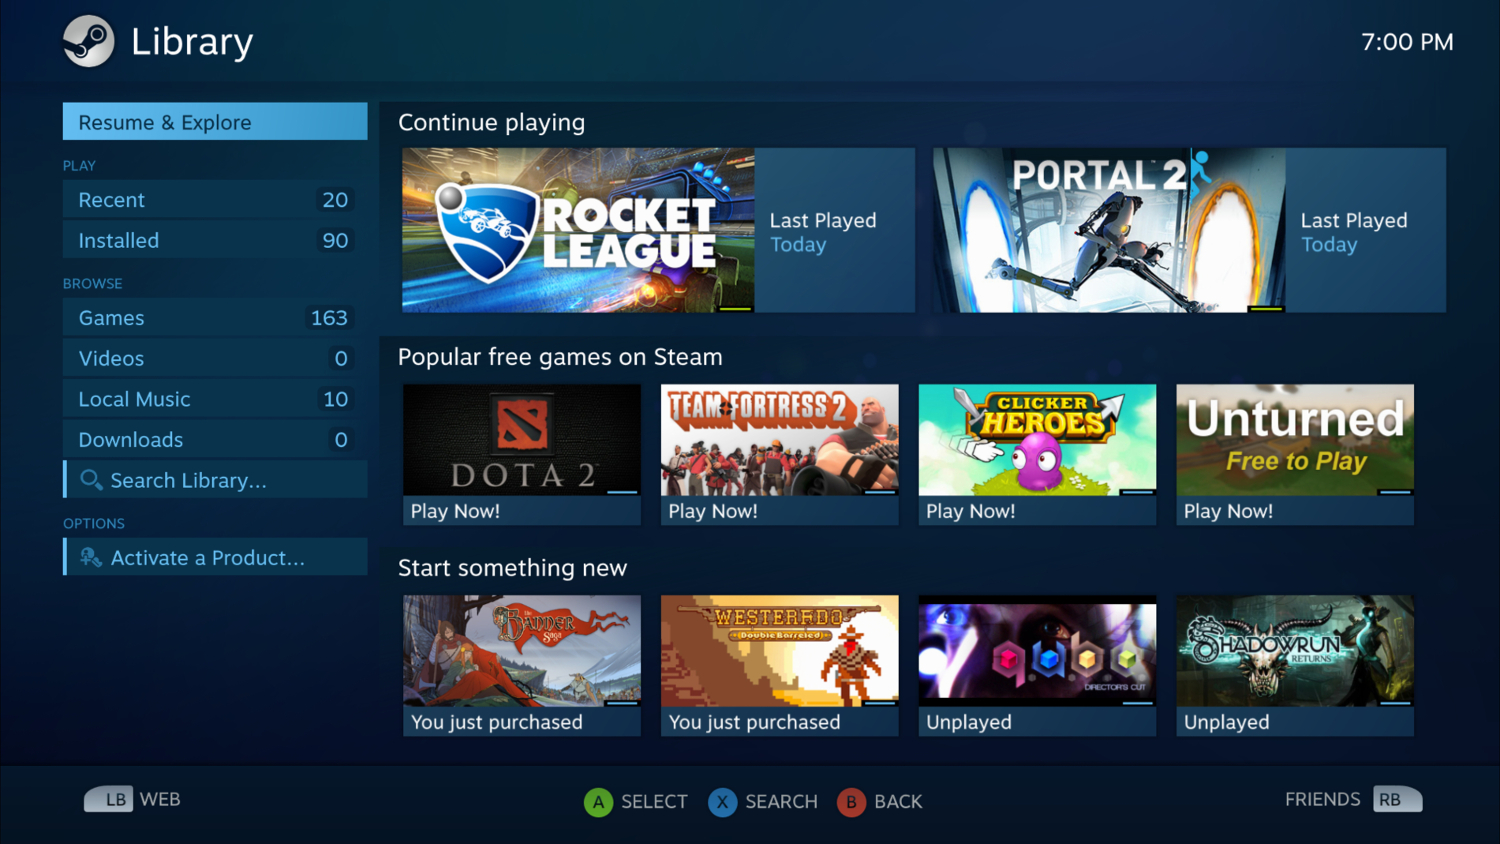 Steam's library interface